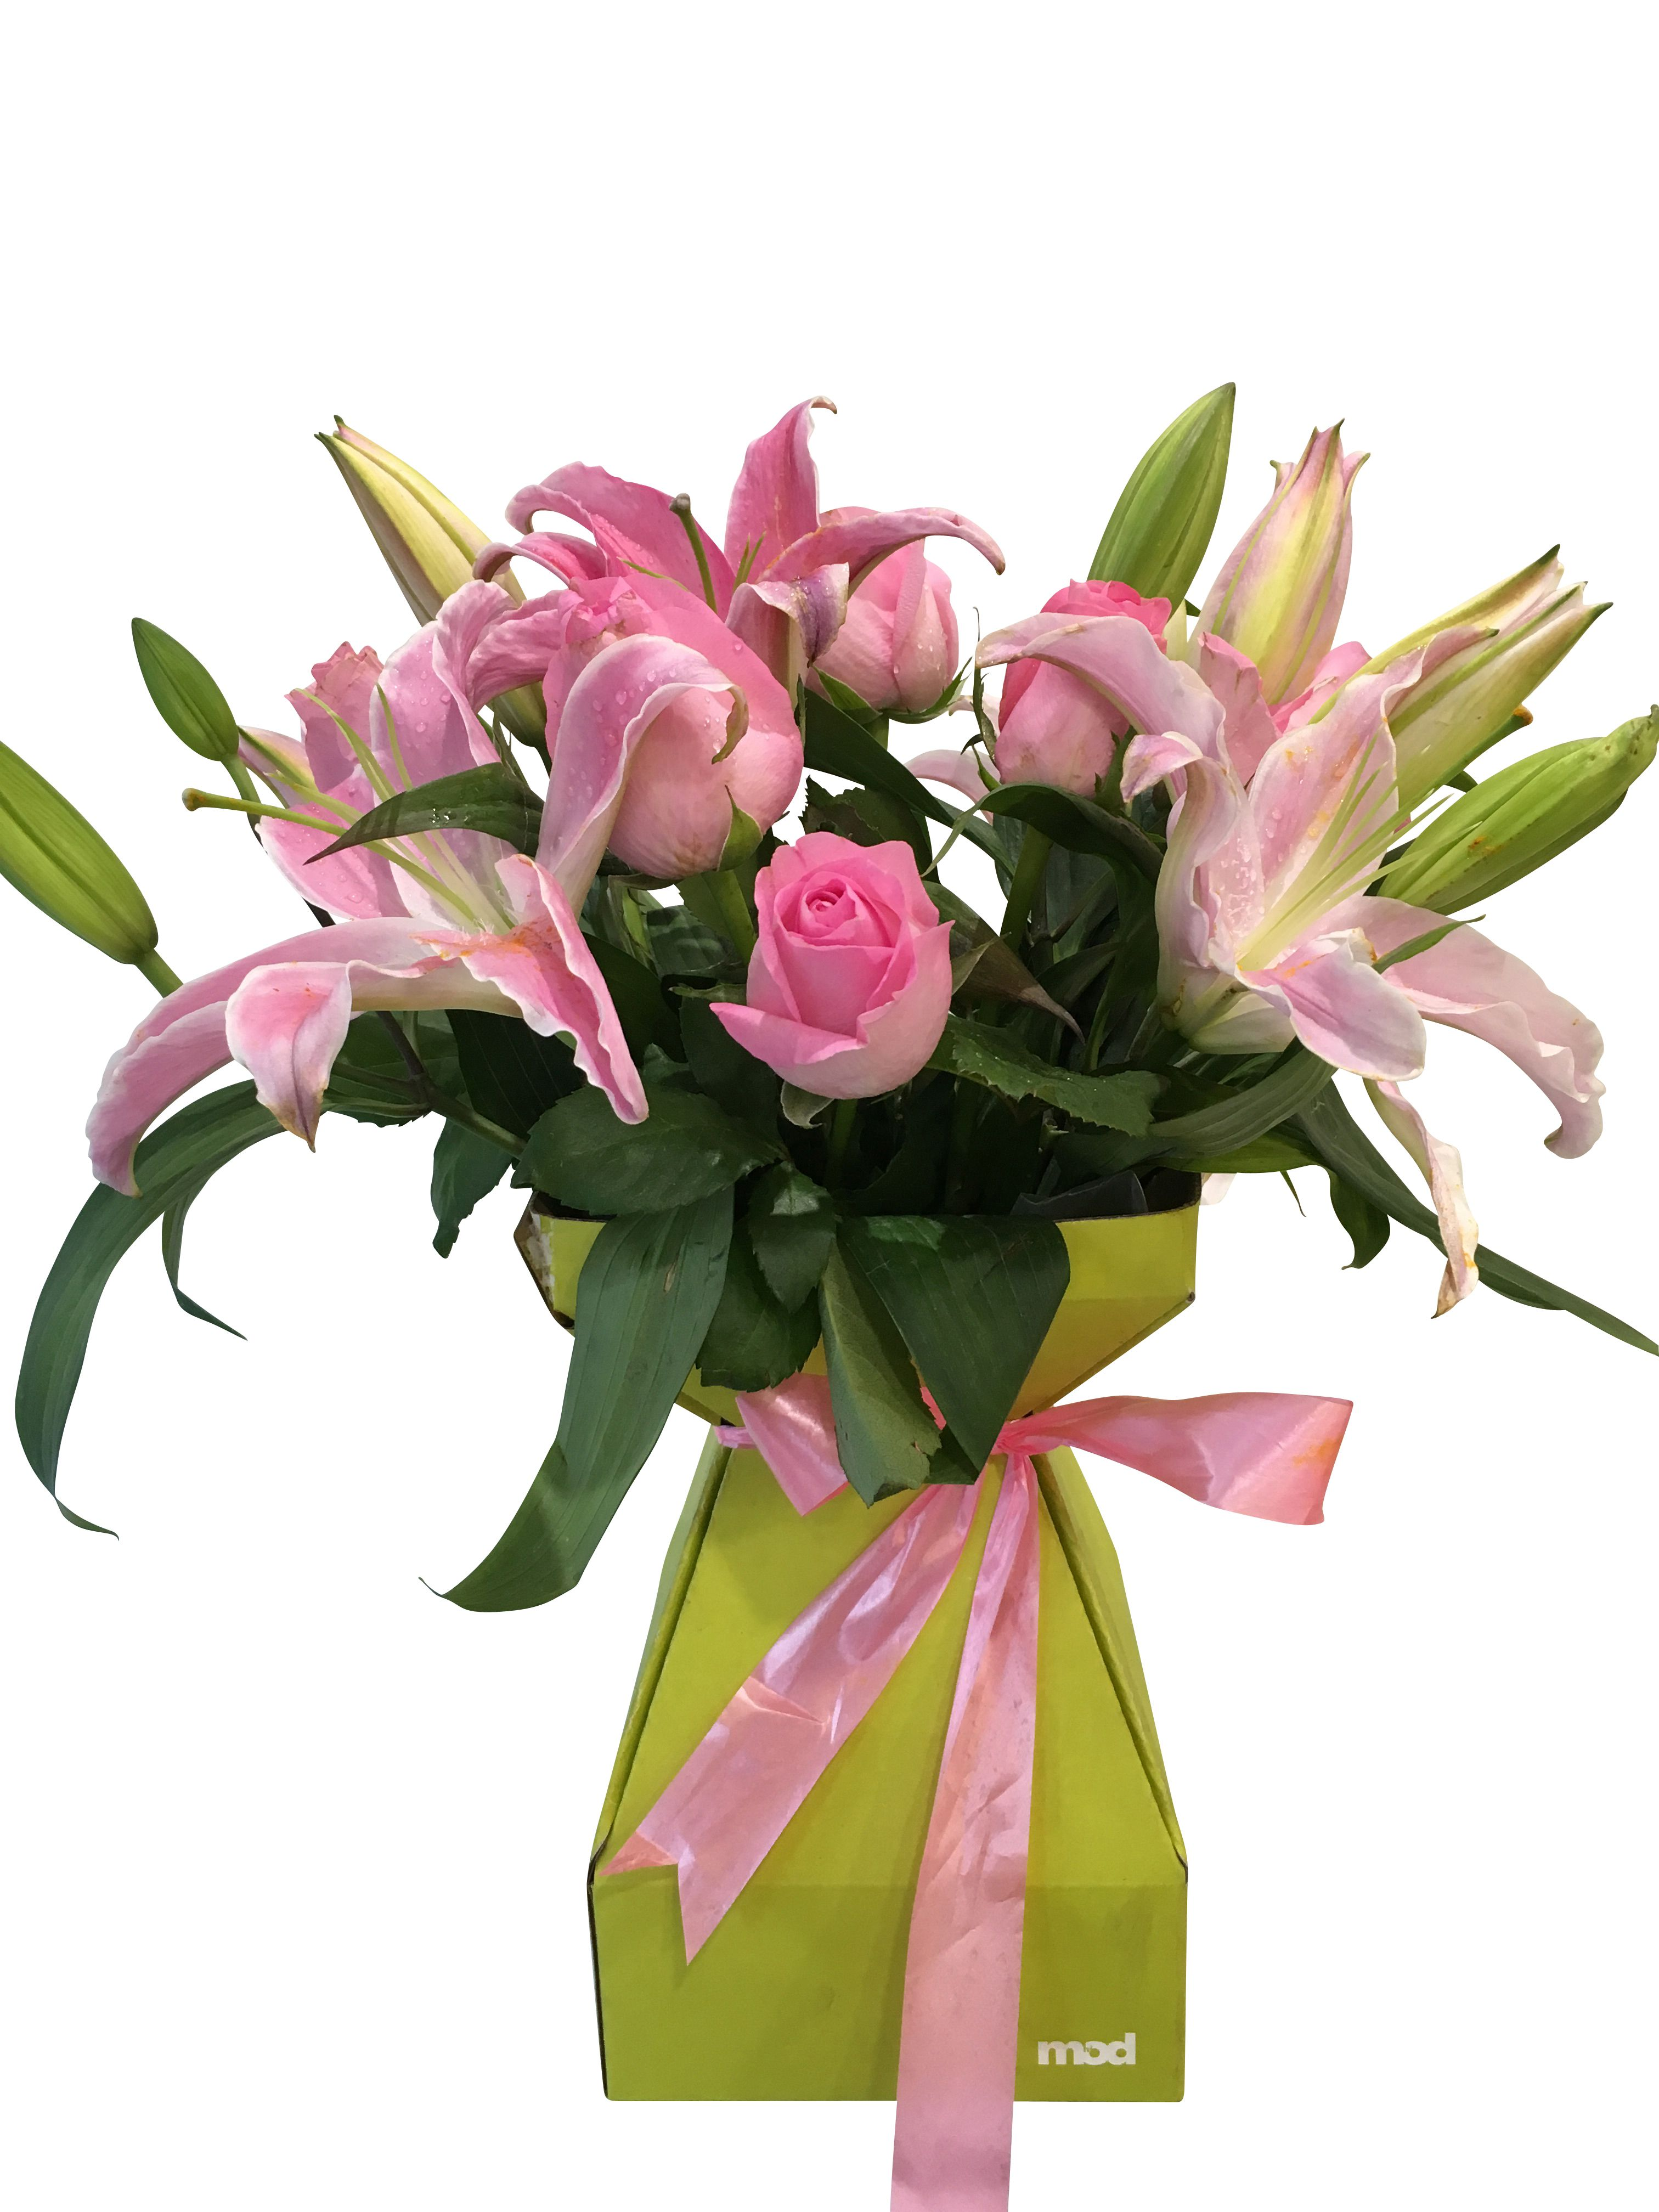 We always choose to send our flowers especially lilies